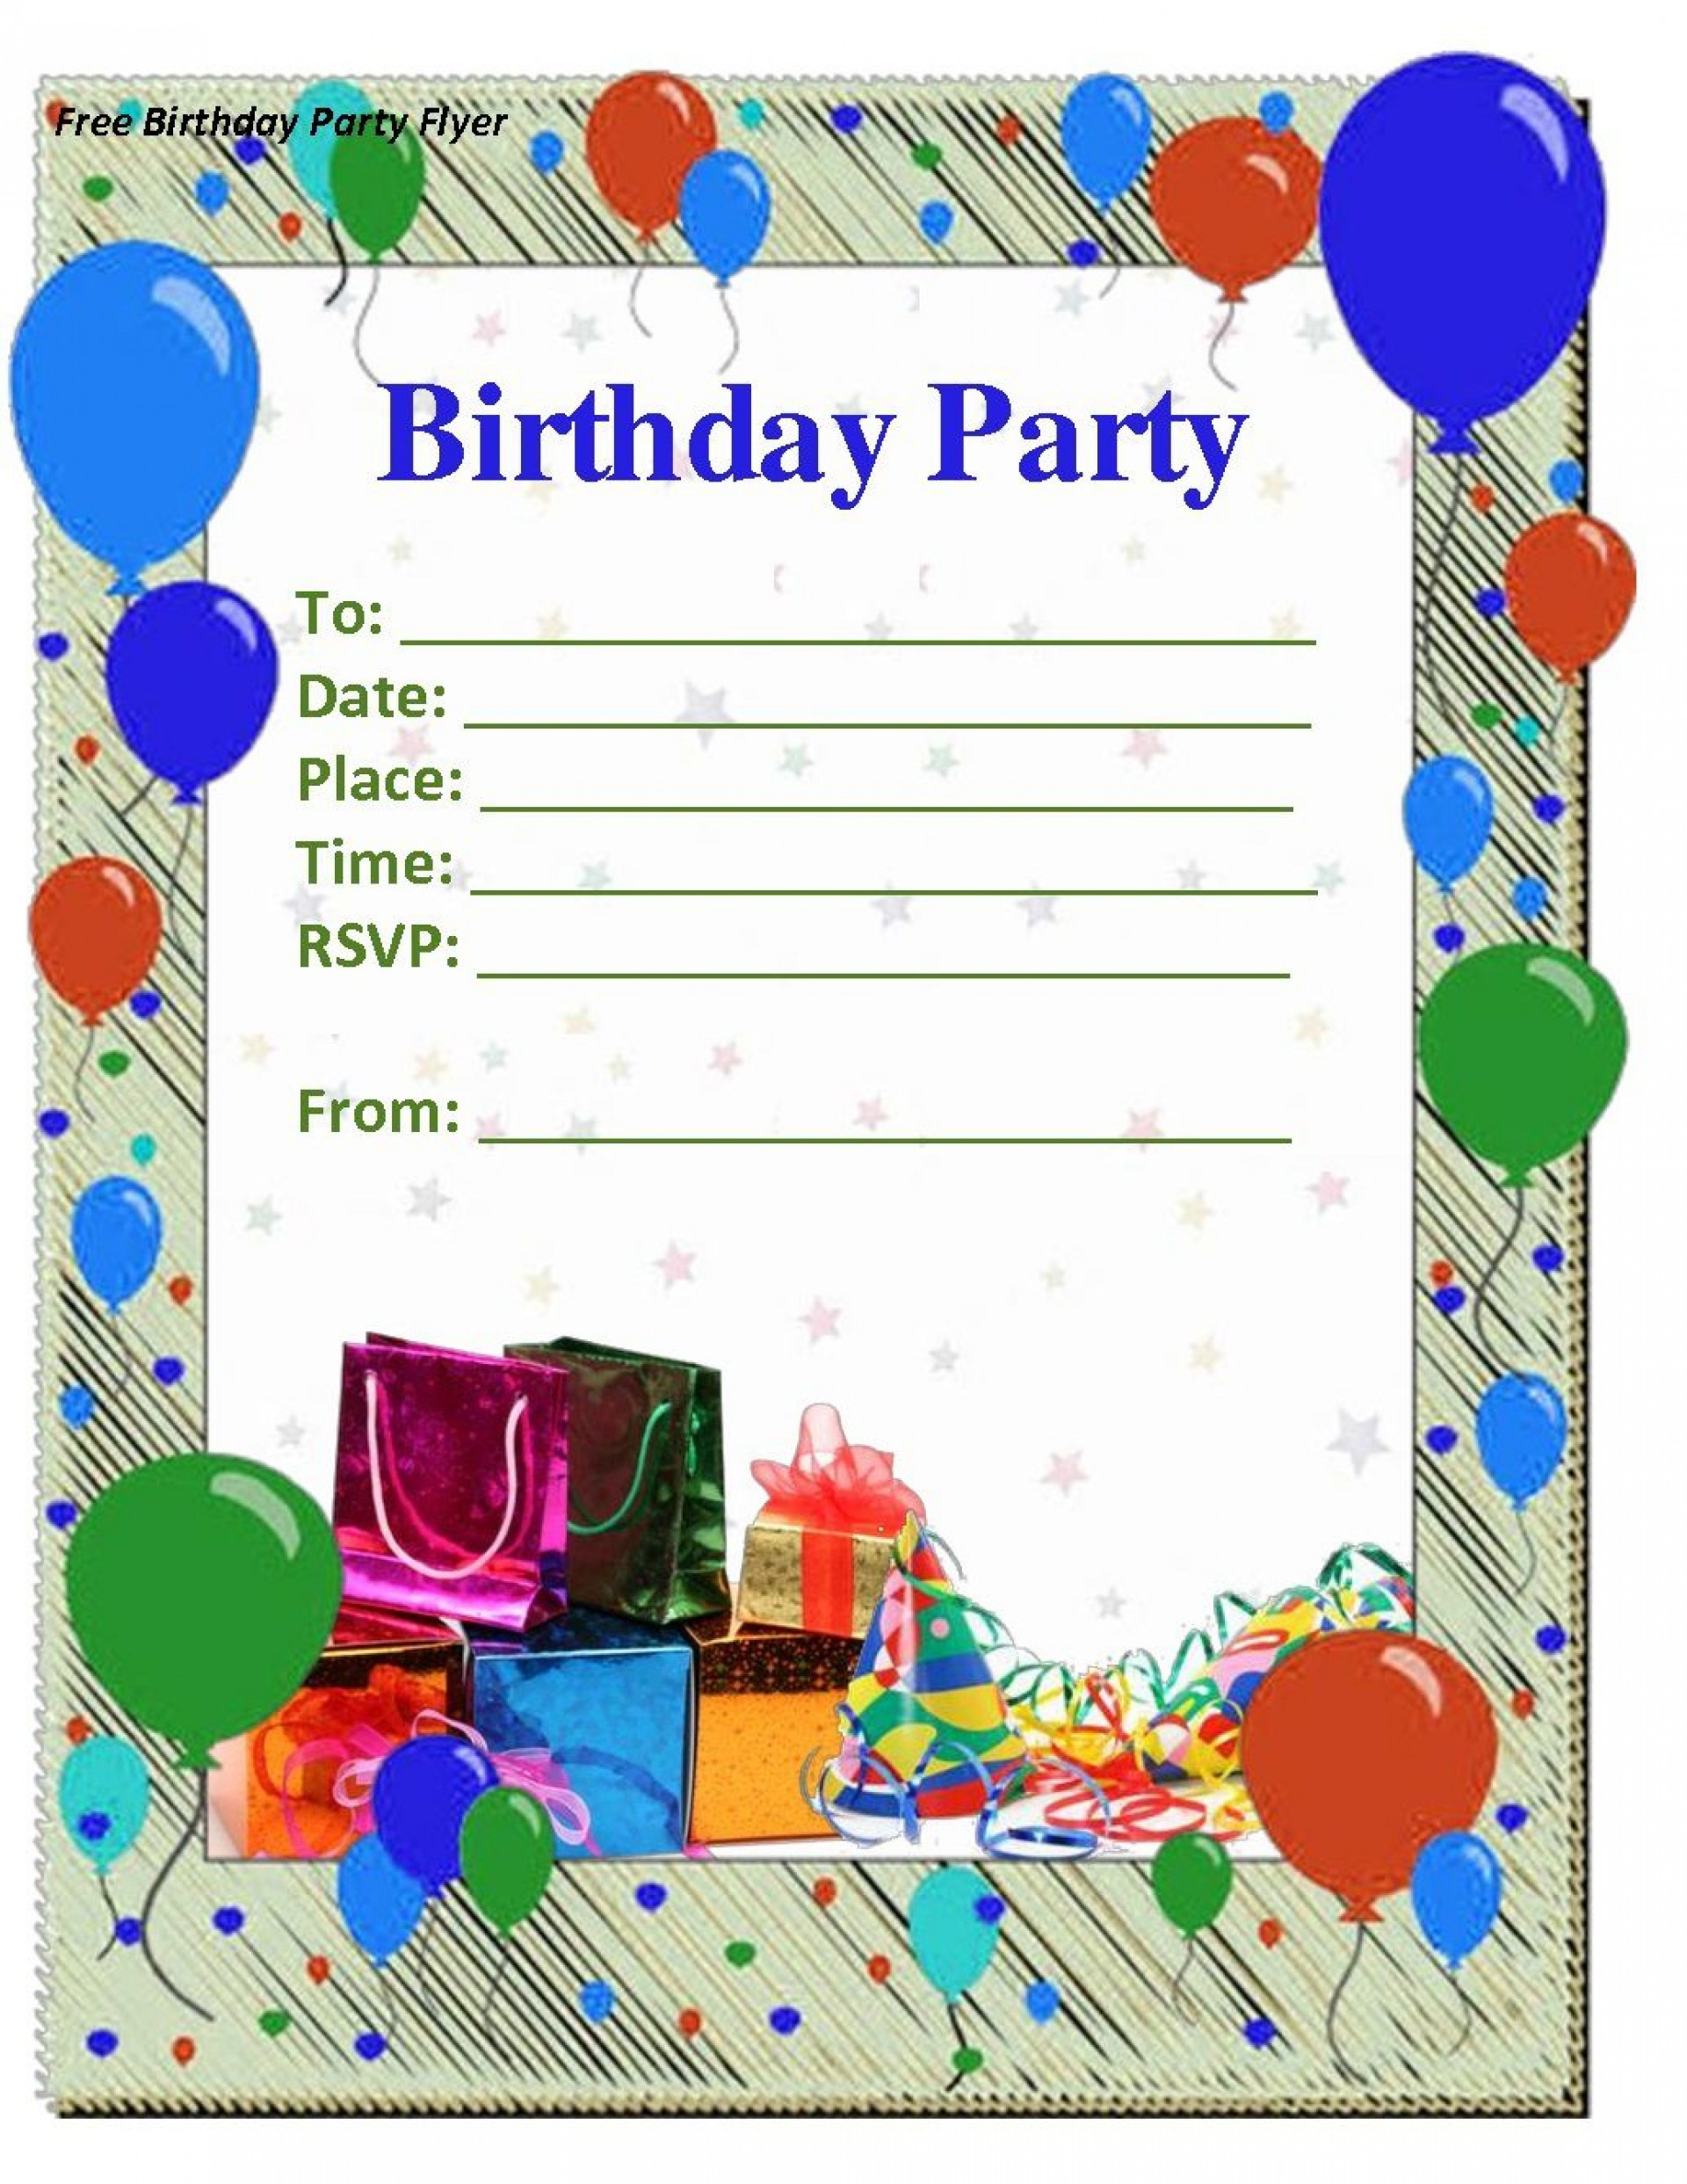 009 Staggering Free Birthday Party Invitation Template For Word Idea 1920